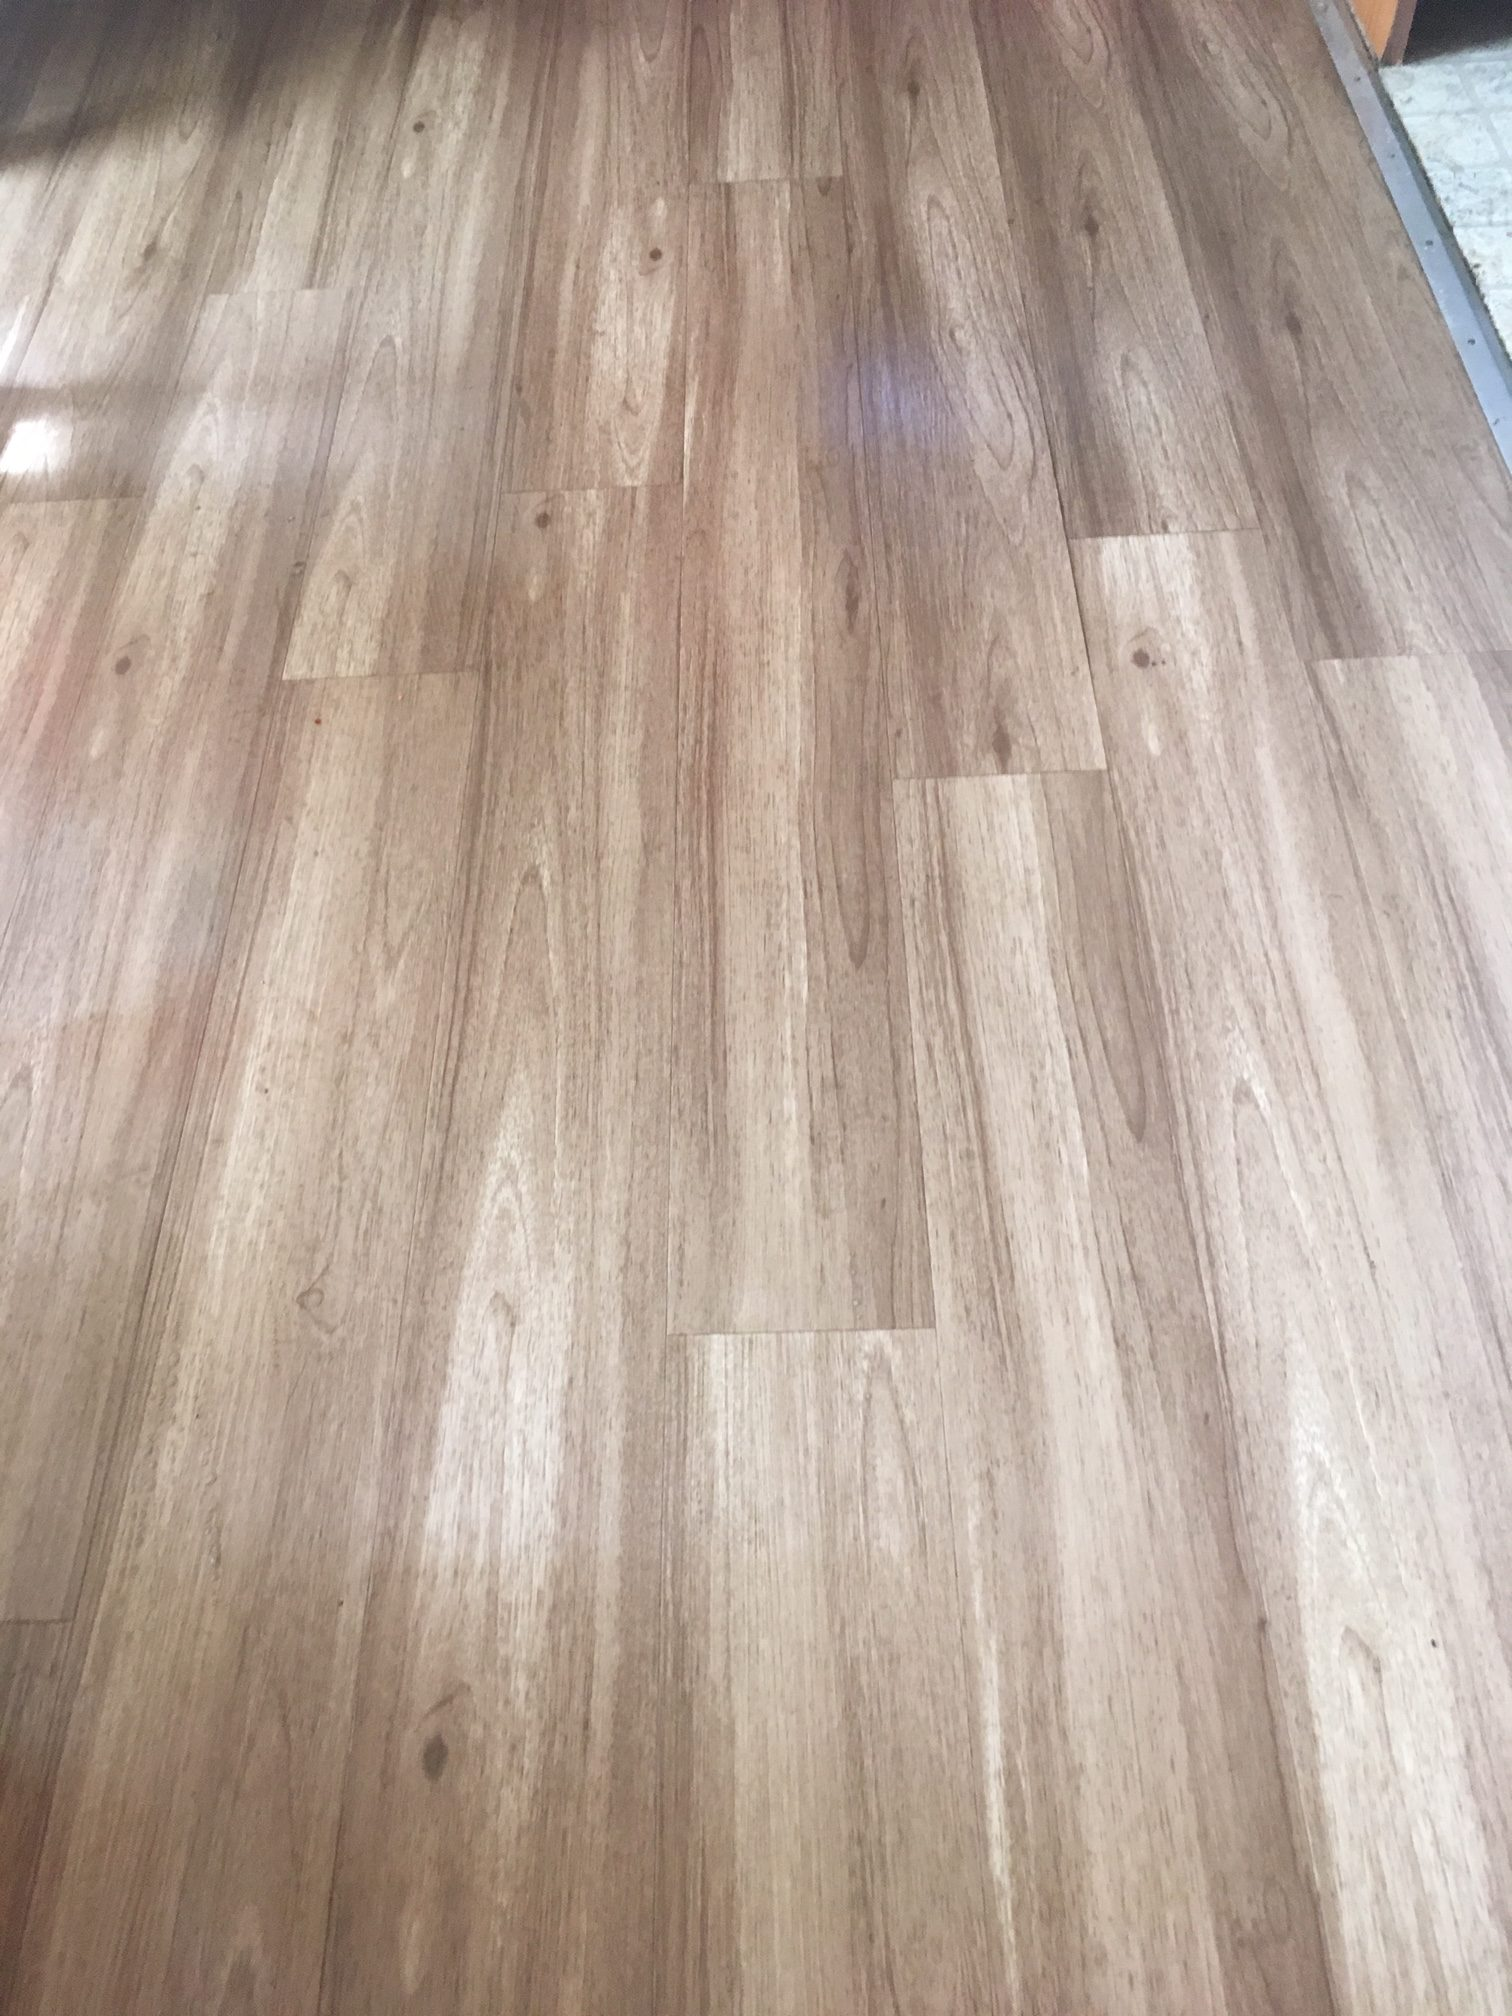 """After"" - LVT cleaning tips: Add 1 oz. dish soap to 1 gal. warm                                                                   water, using squeez  mop, Sunnyvale flooring looking new again."